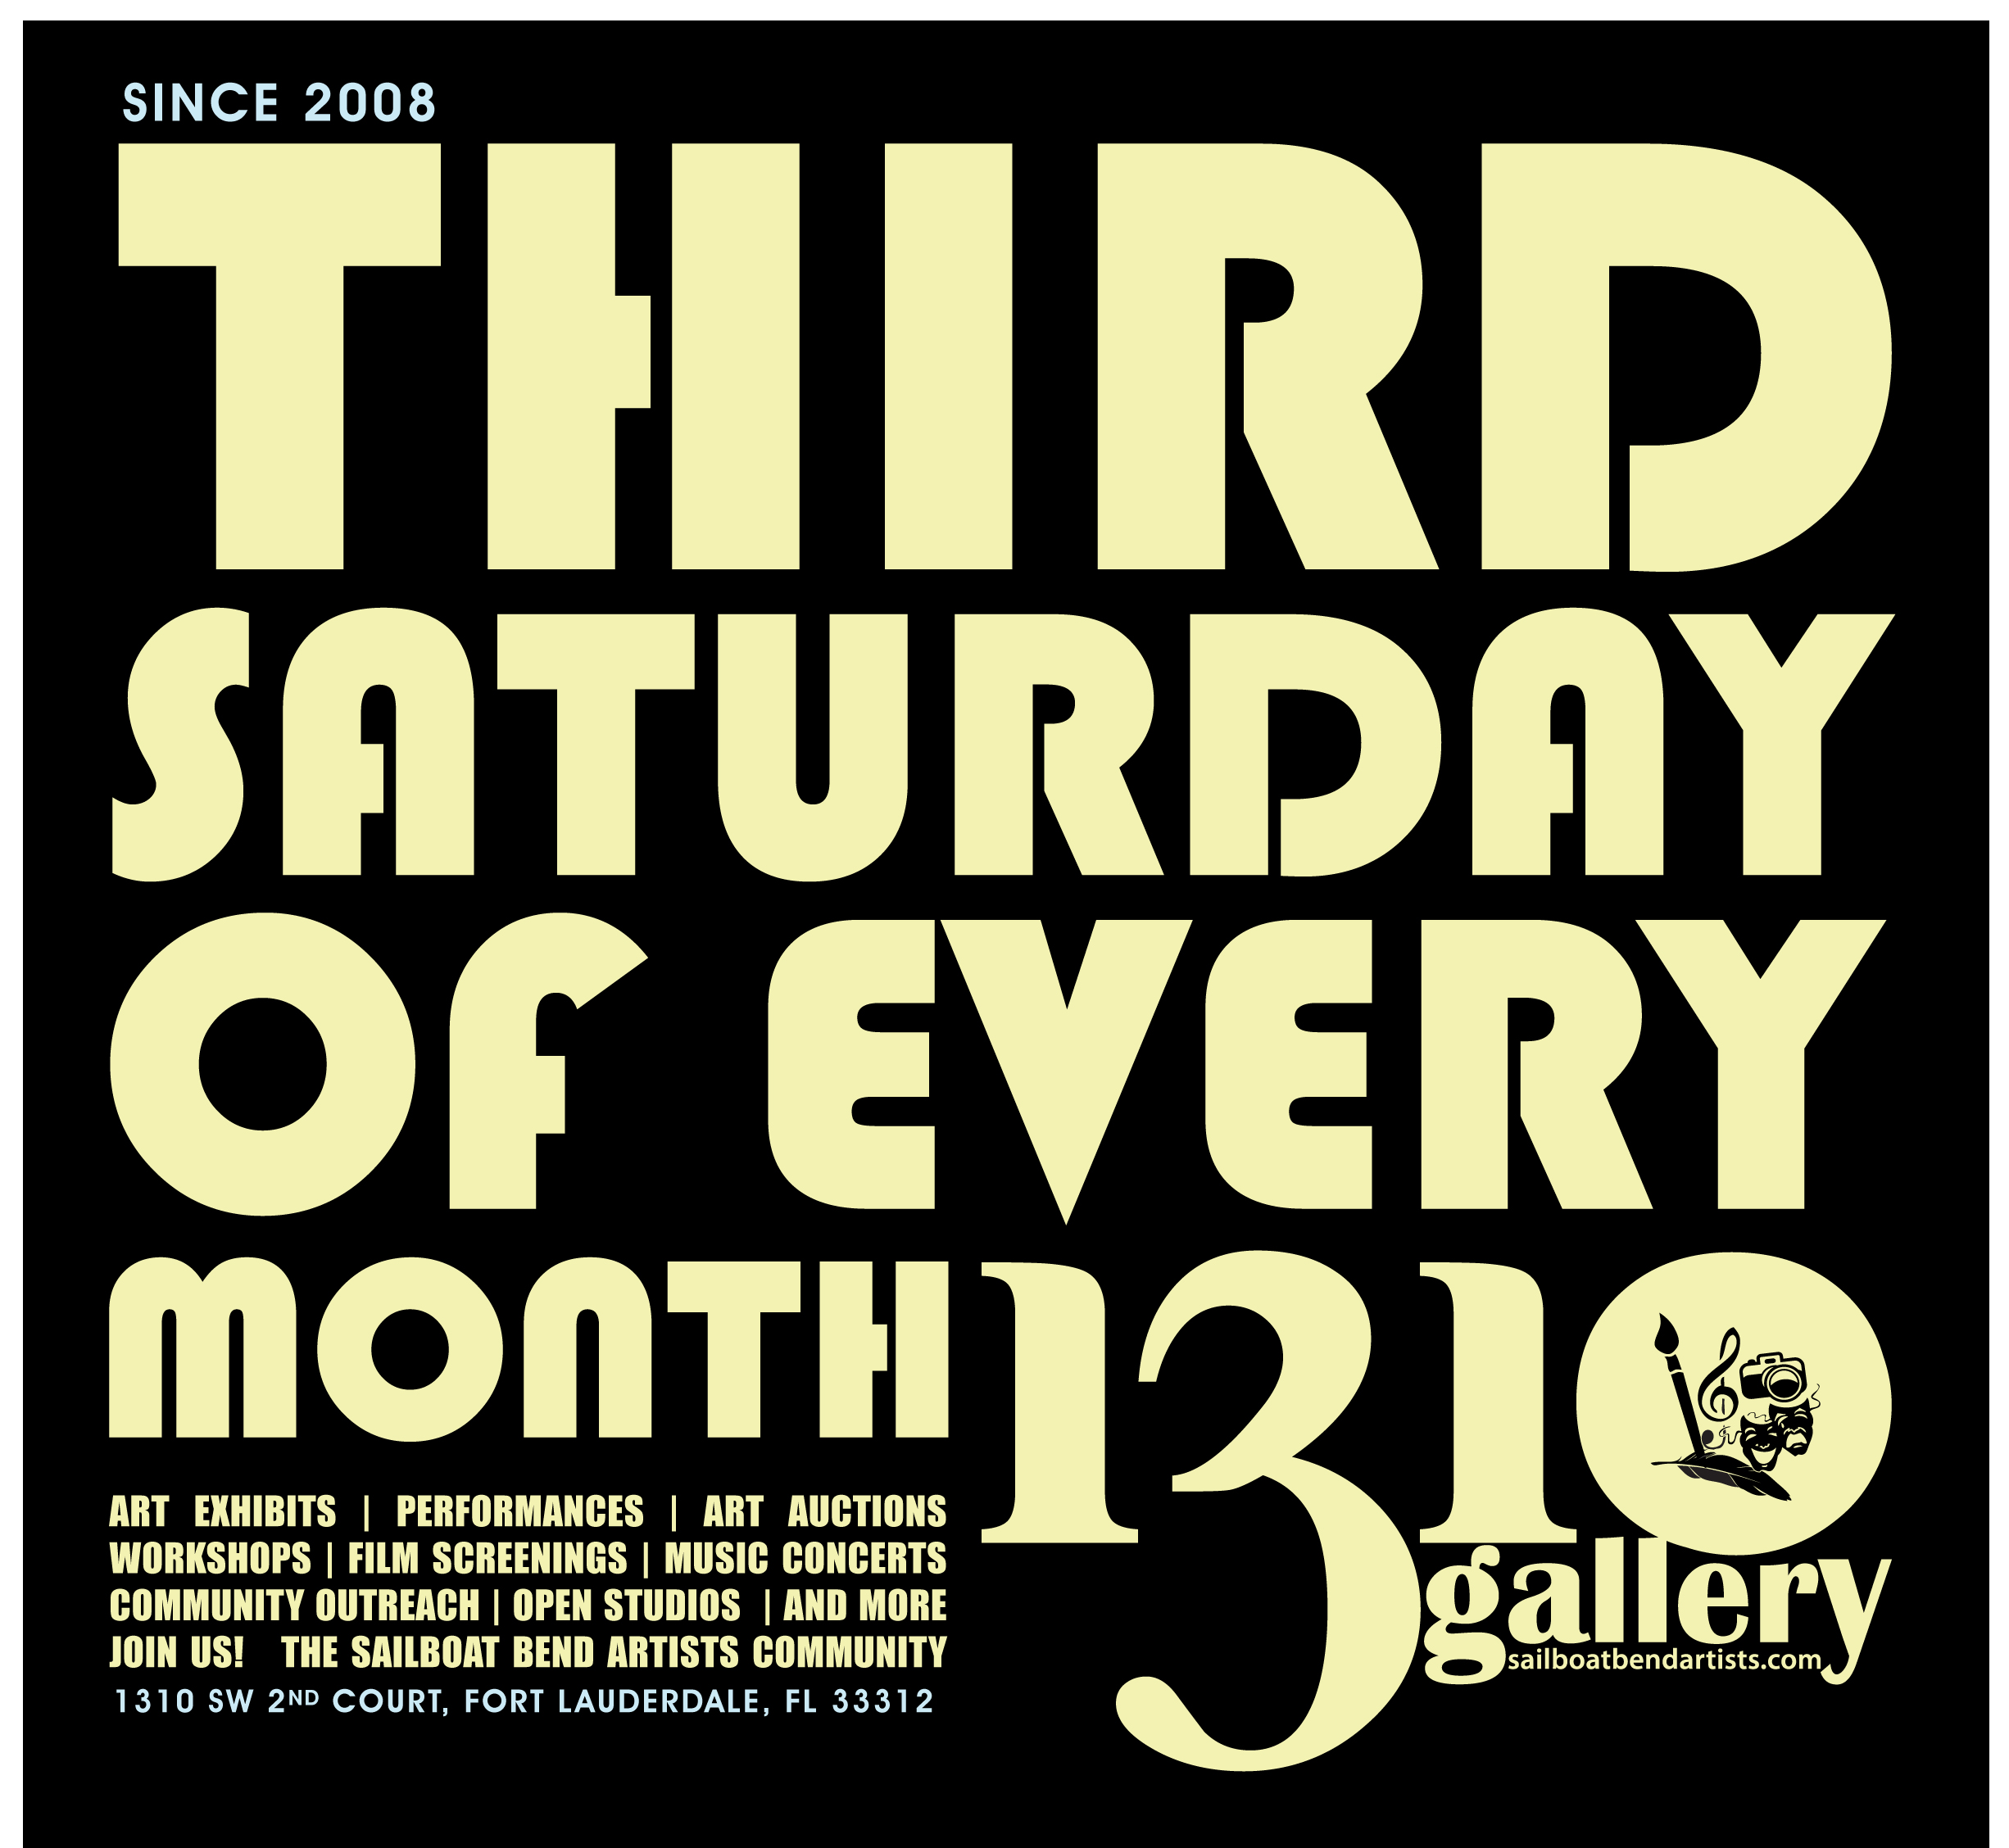 1310 Gallery - Every Third Saturday of the Month